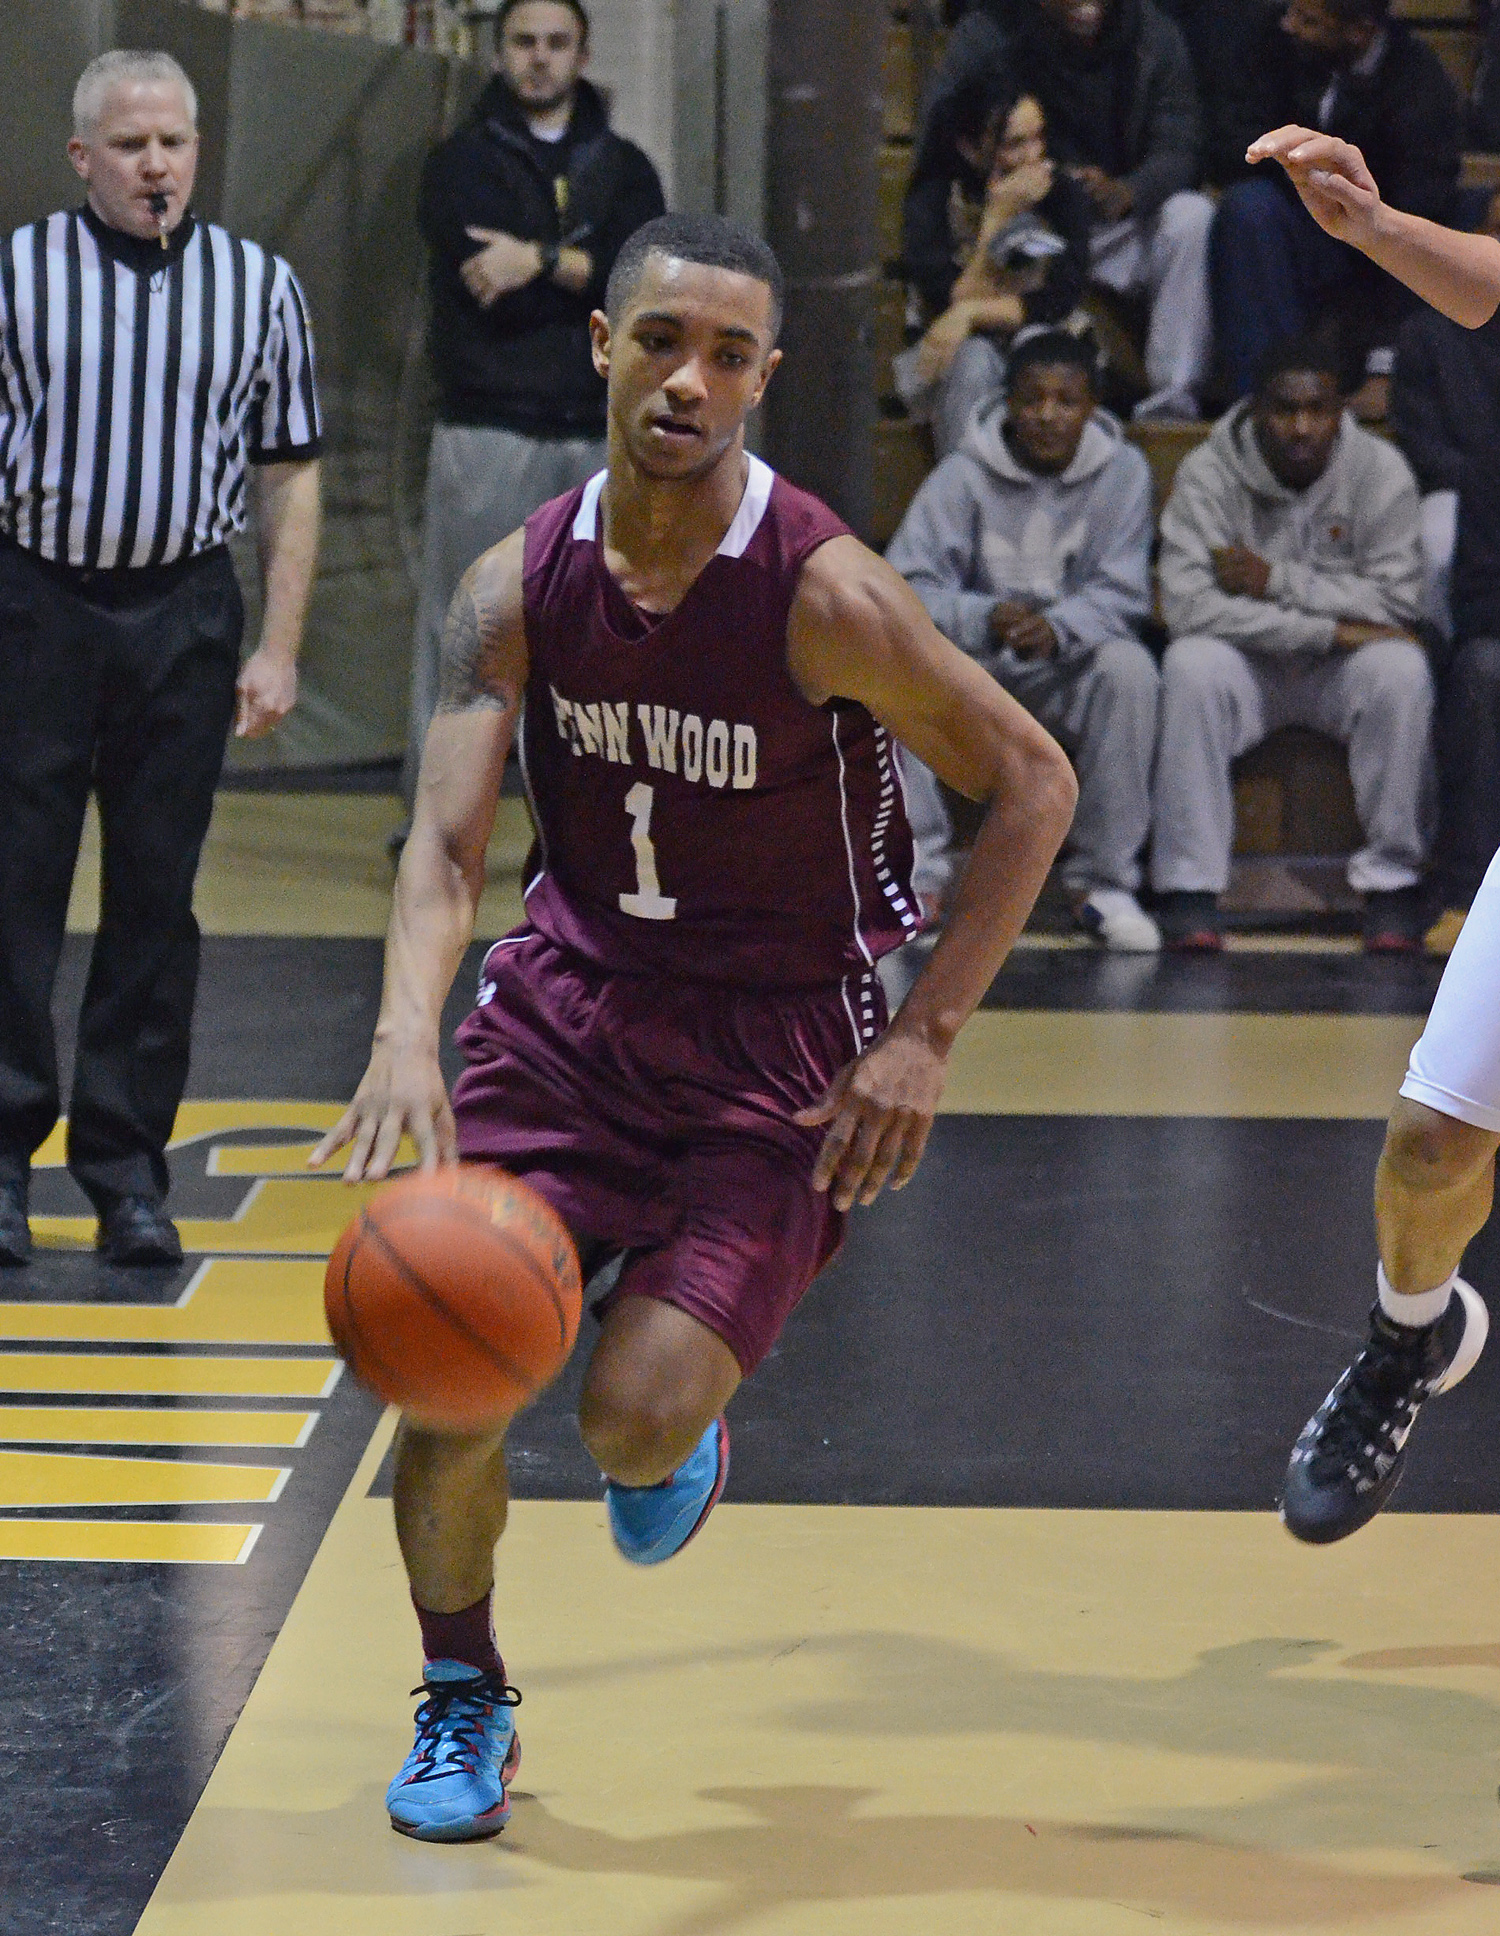 Boys Basketball Districts Previews – Penn Wood out to prove they